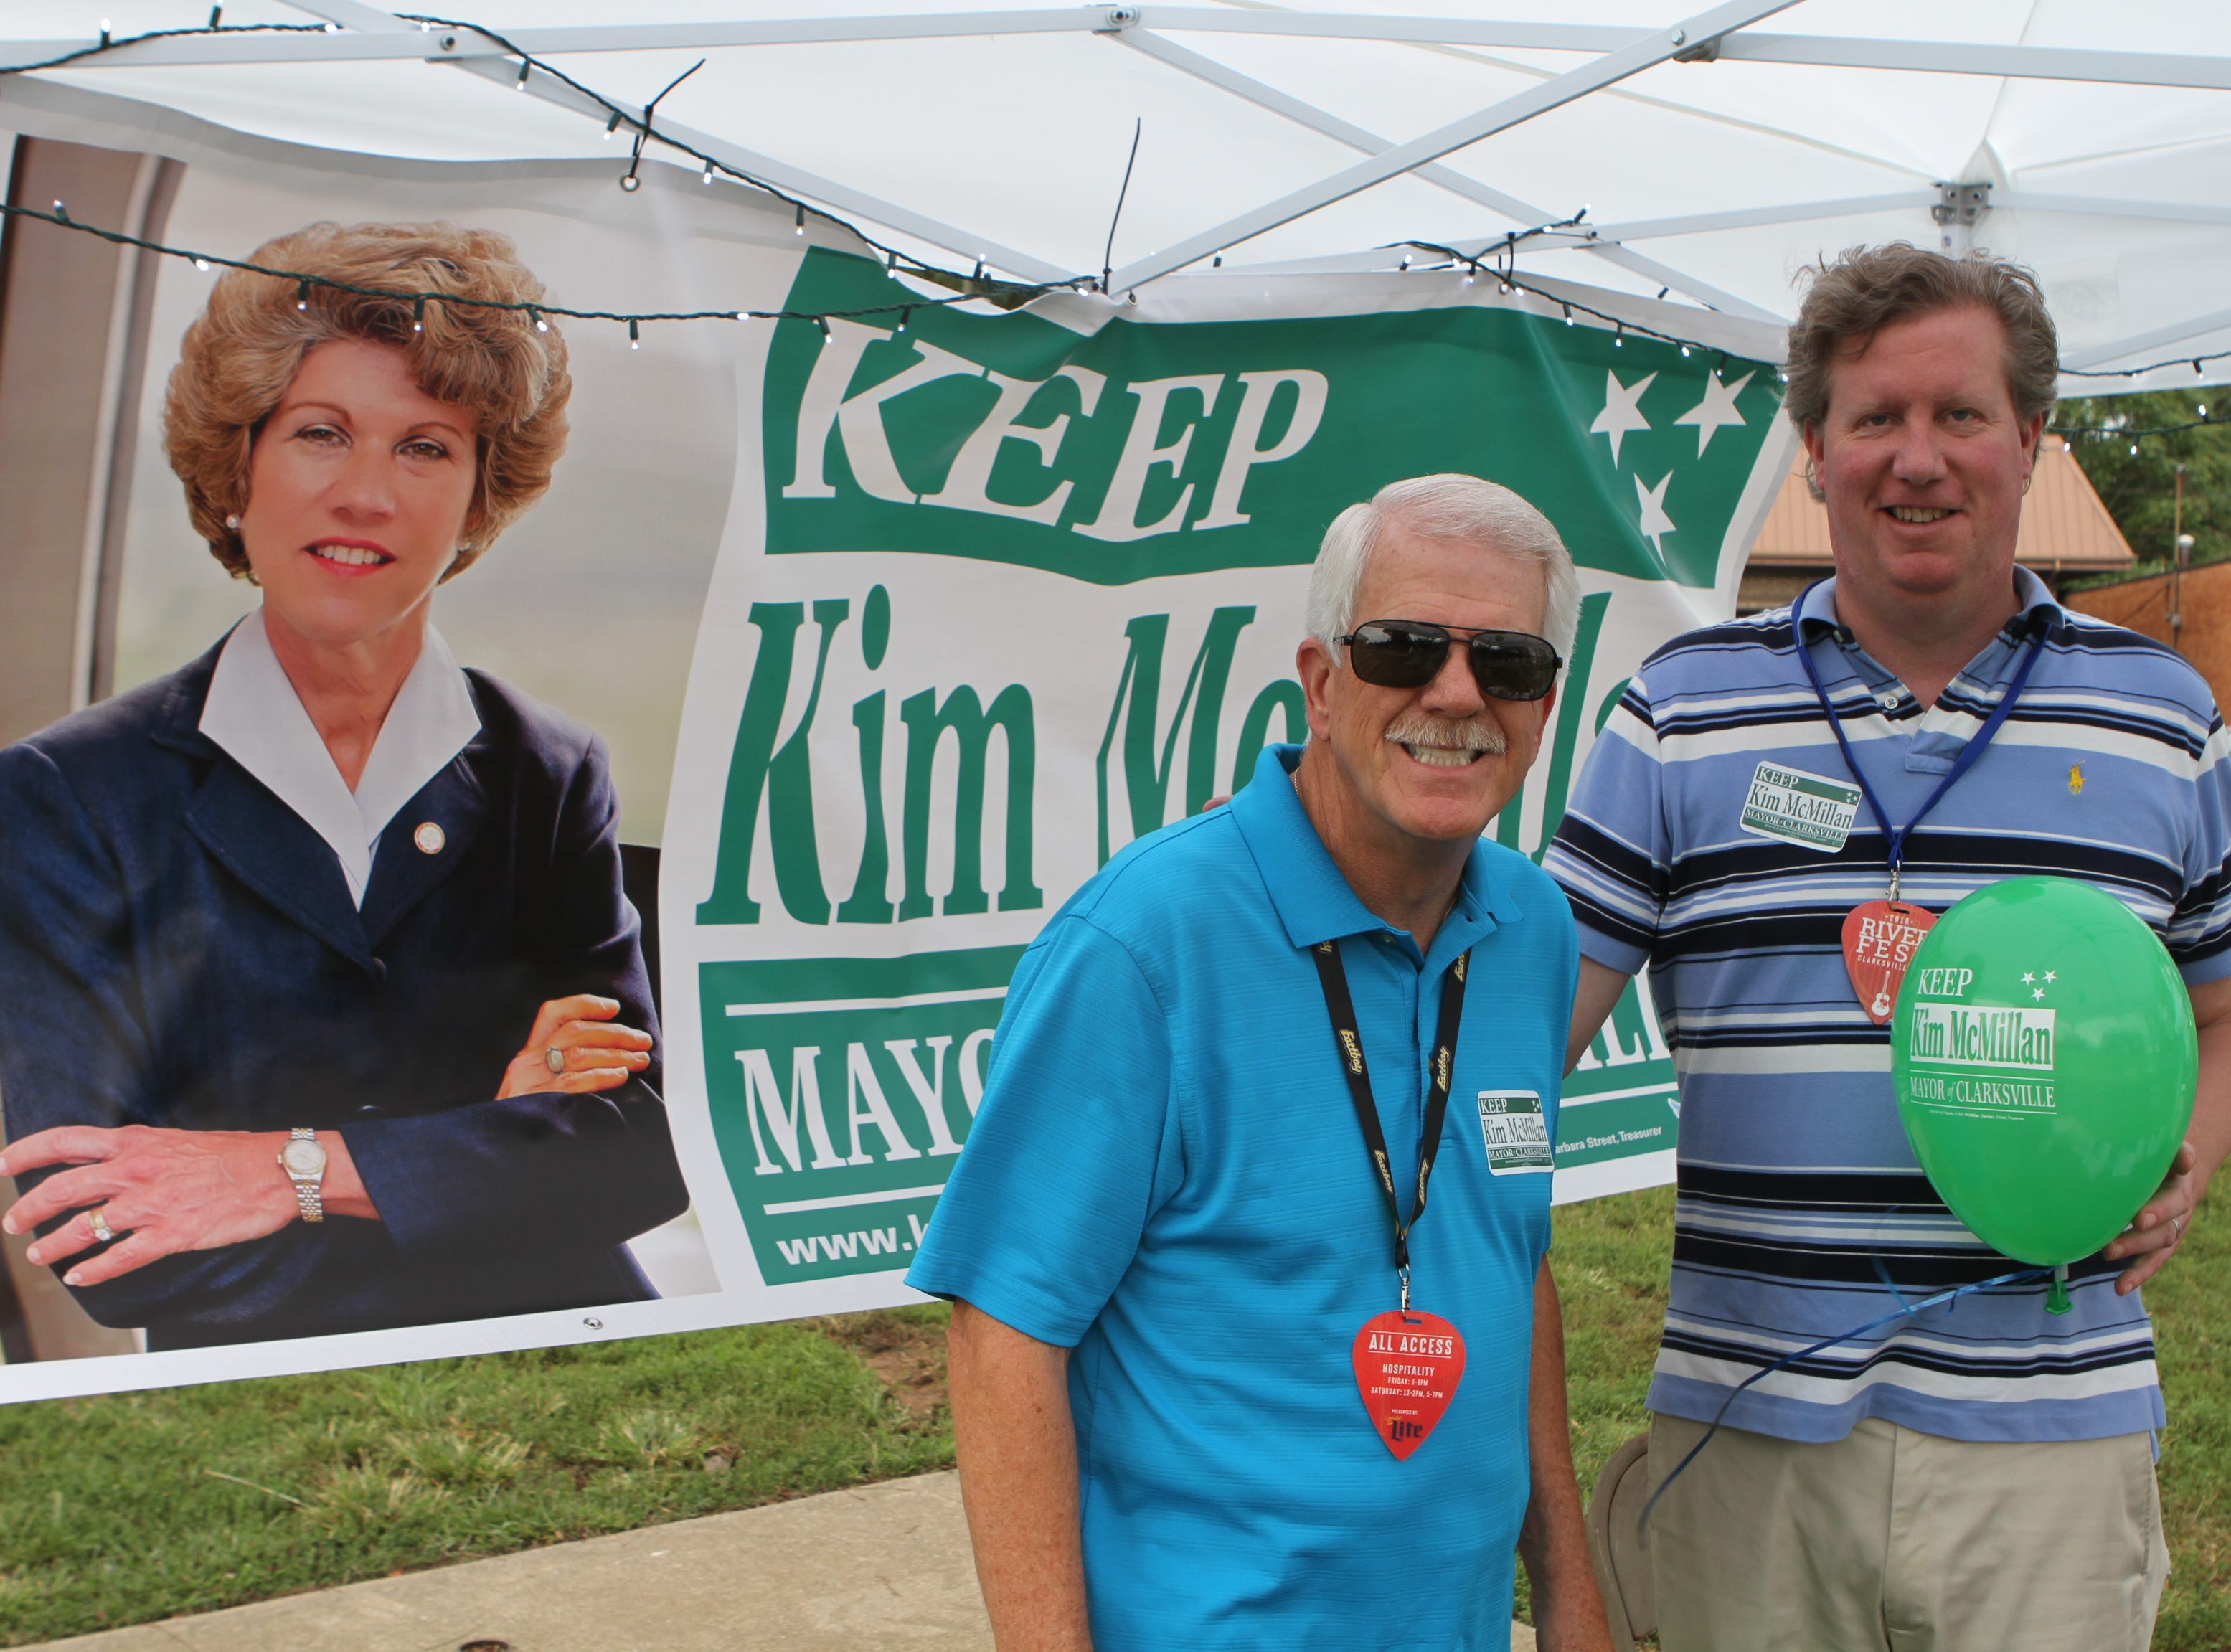 Geno Grubbs and Steve Stroman at Clarksville Riverfest on Saturday, Sept. 8, 2018.